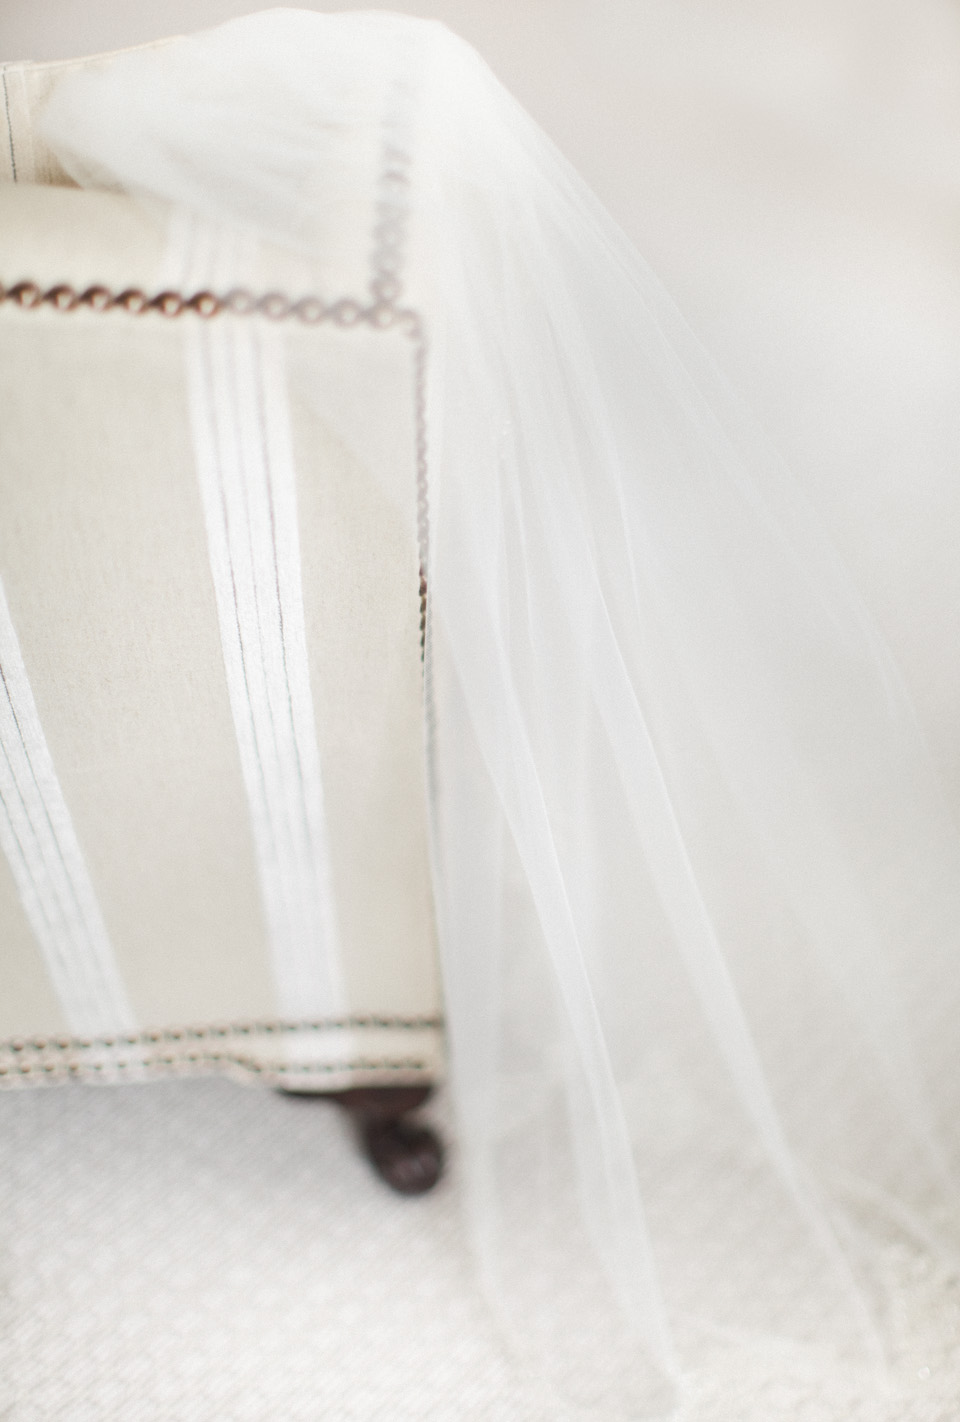 Image of a veil carefully sitting on a white striped plush chair.